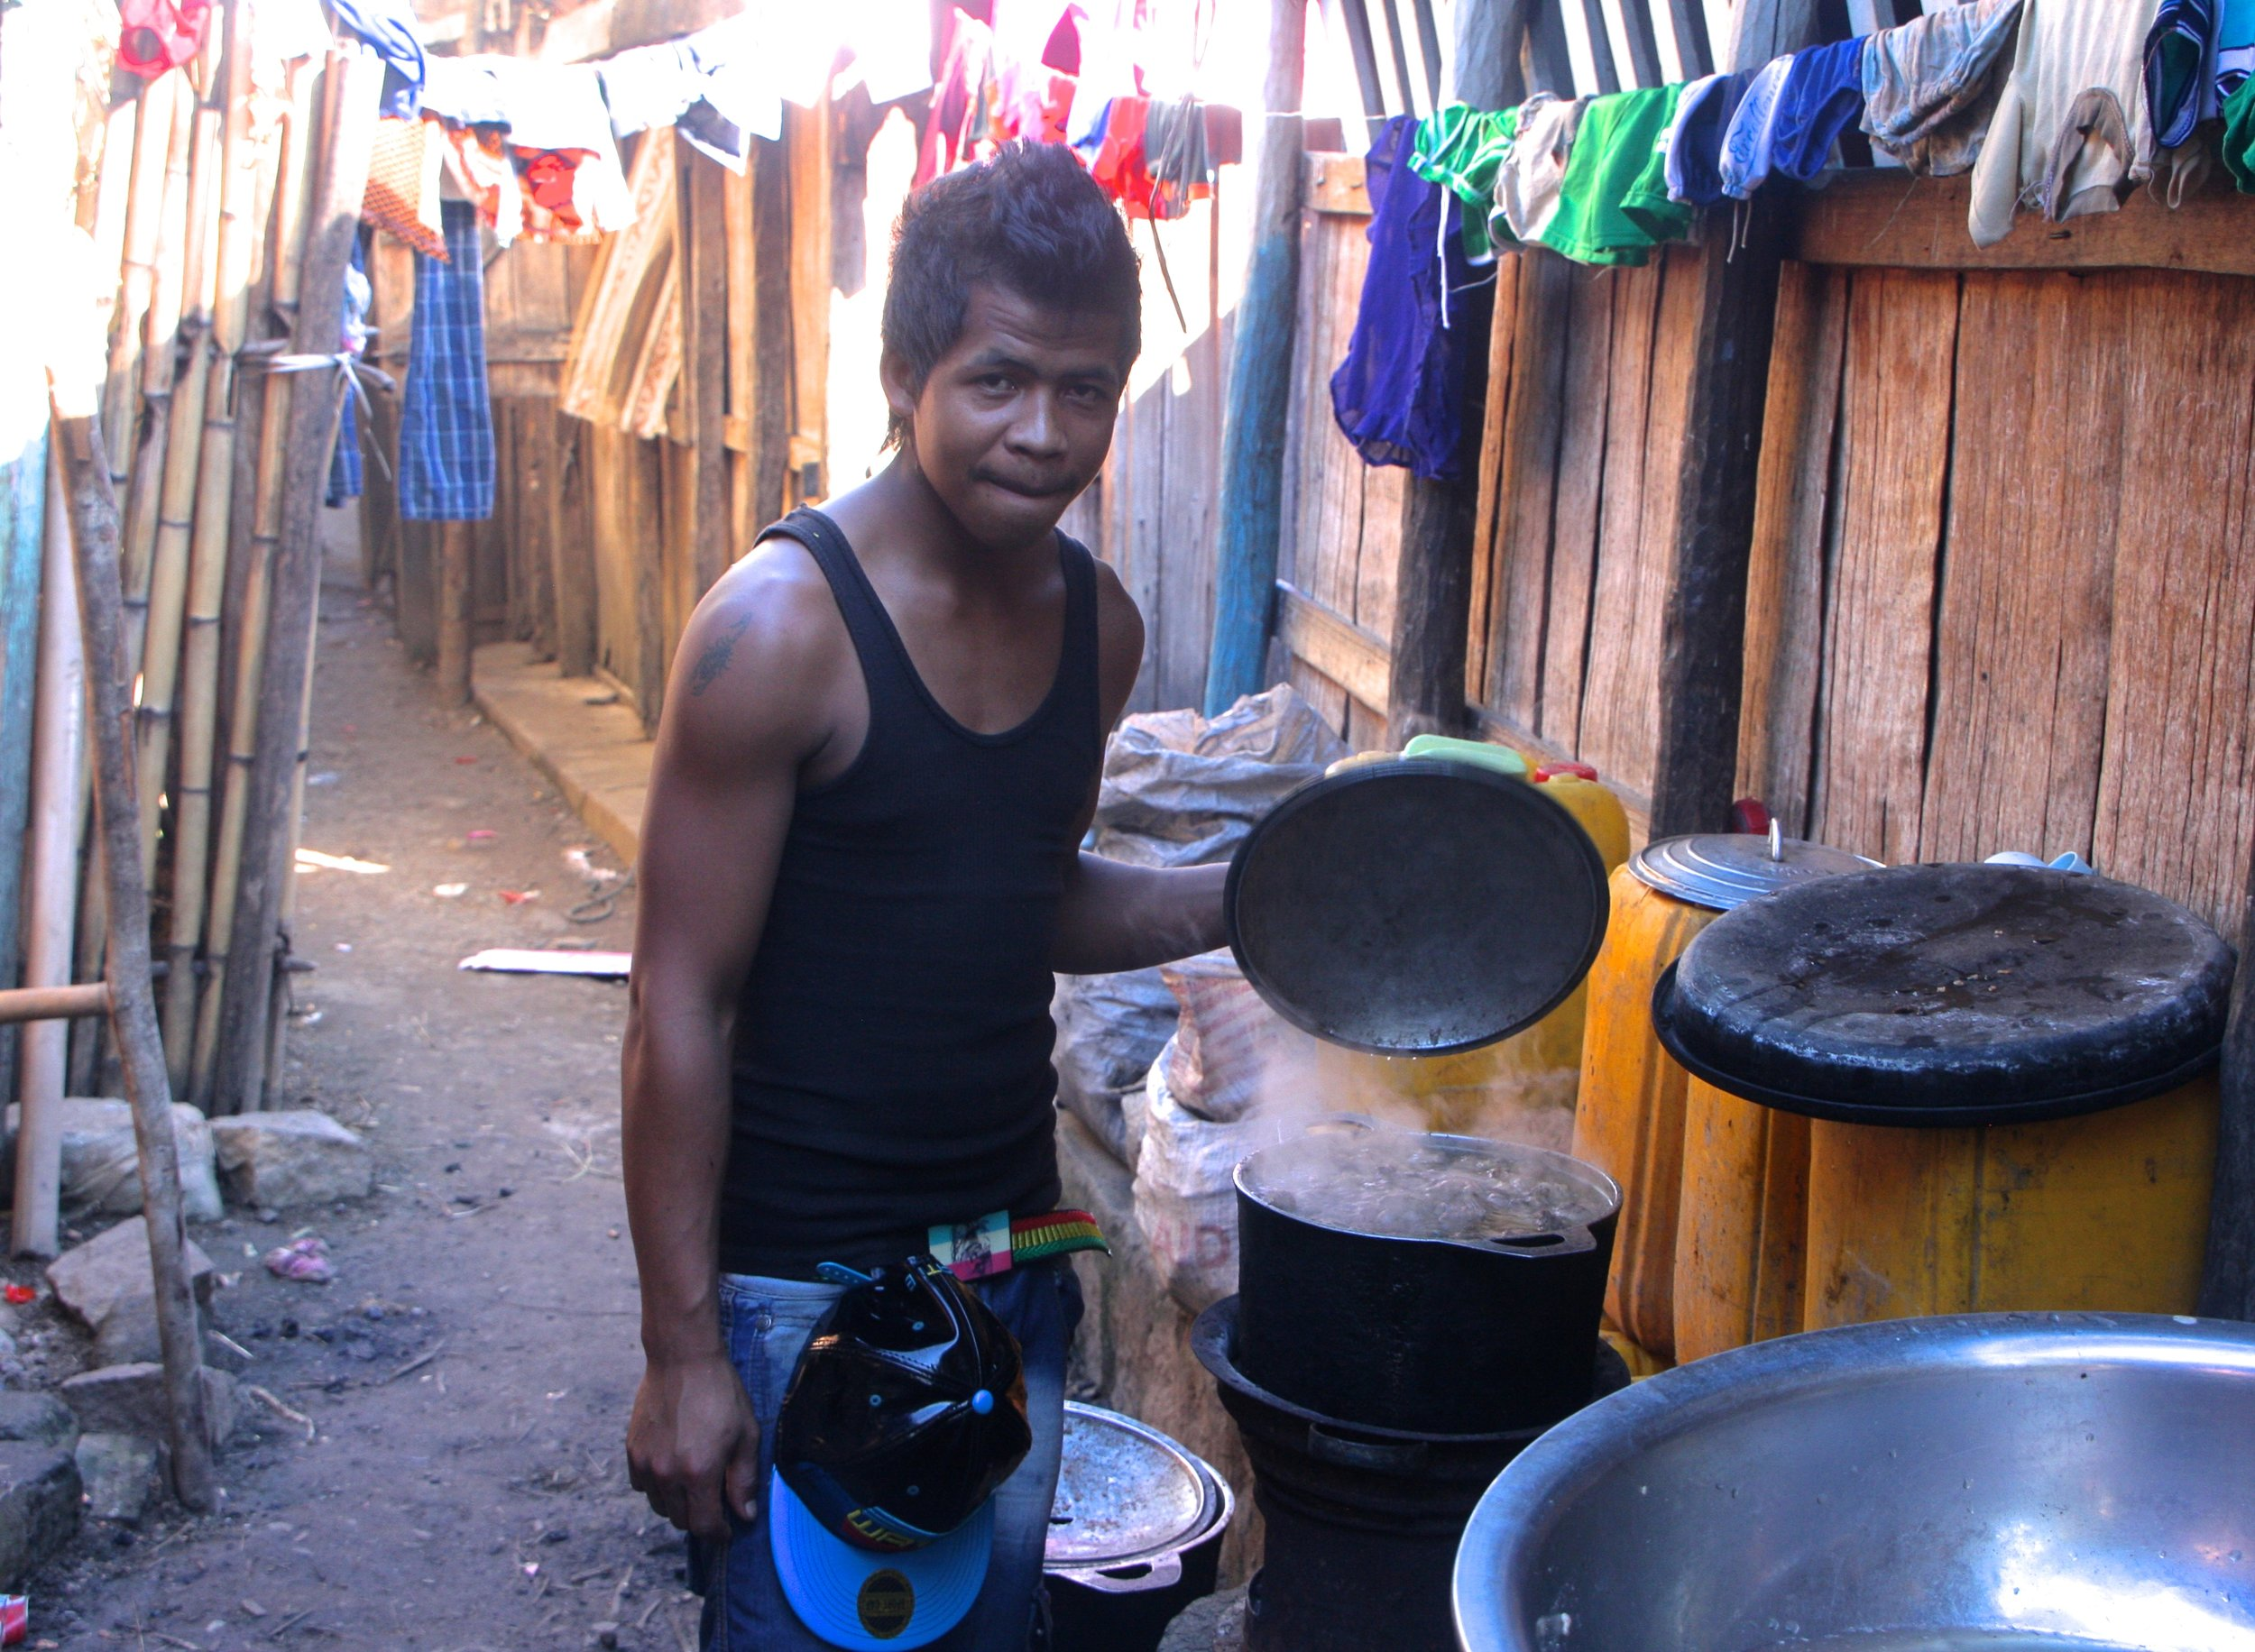 Cooking lunch over a wood stove in Kianjavato.